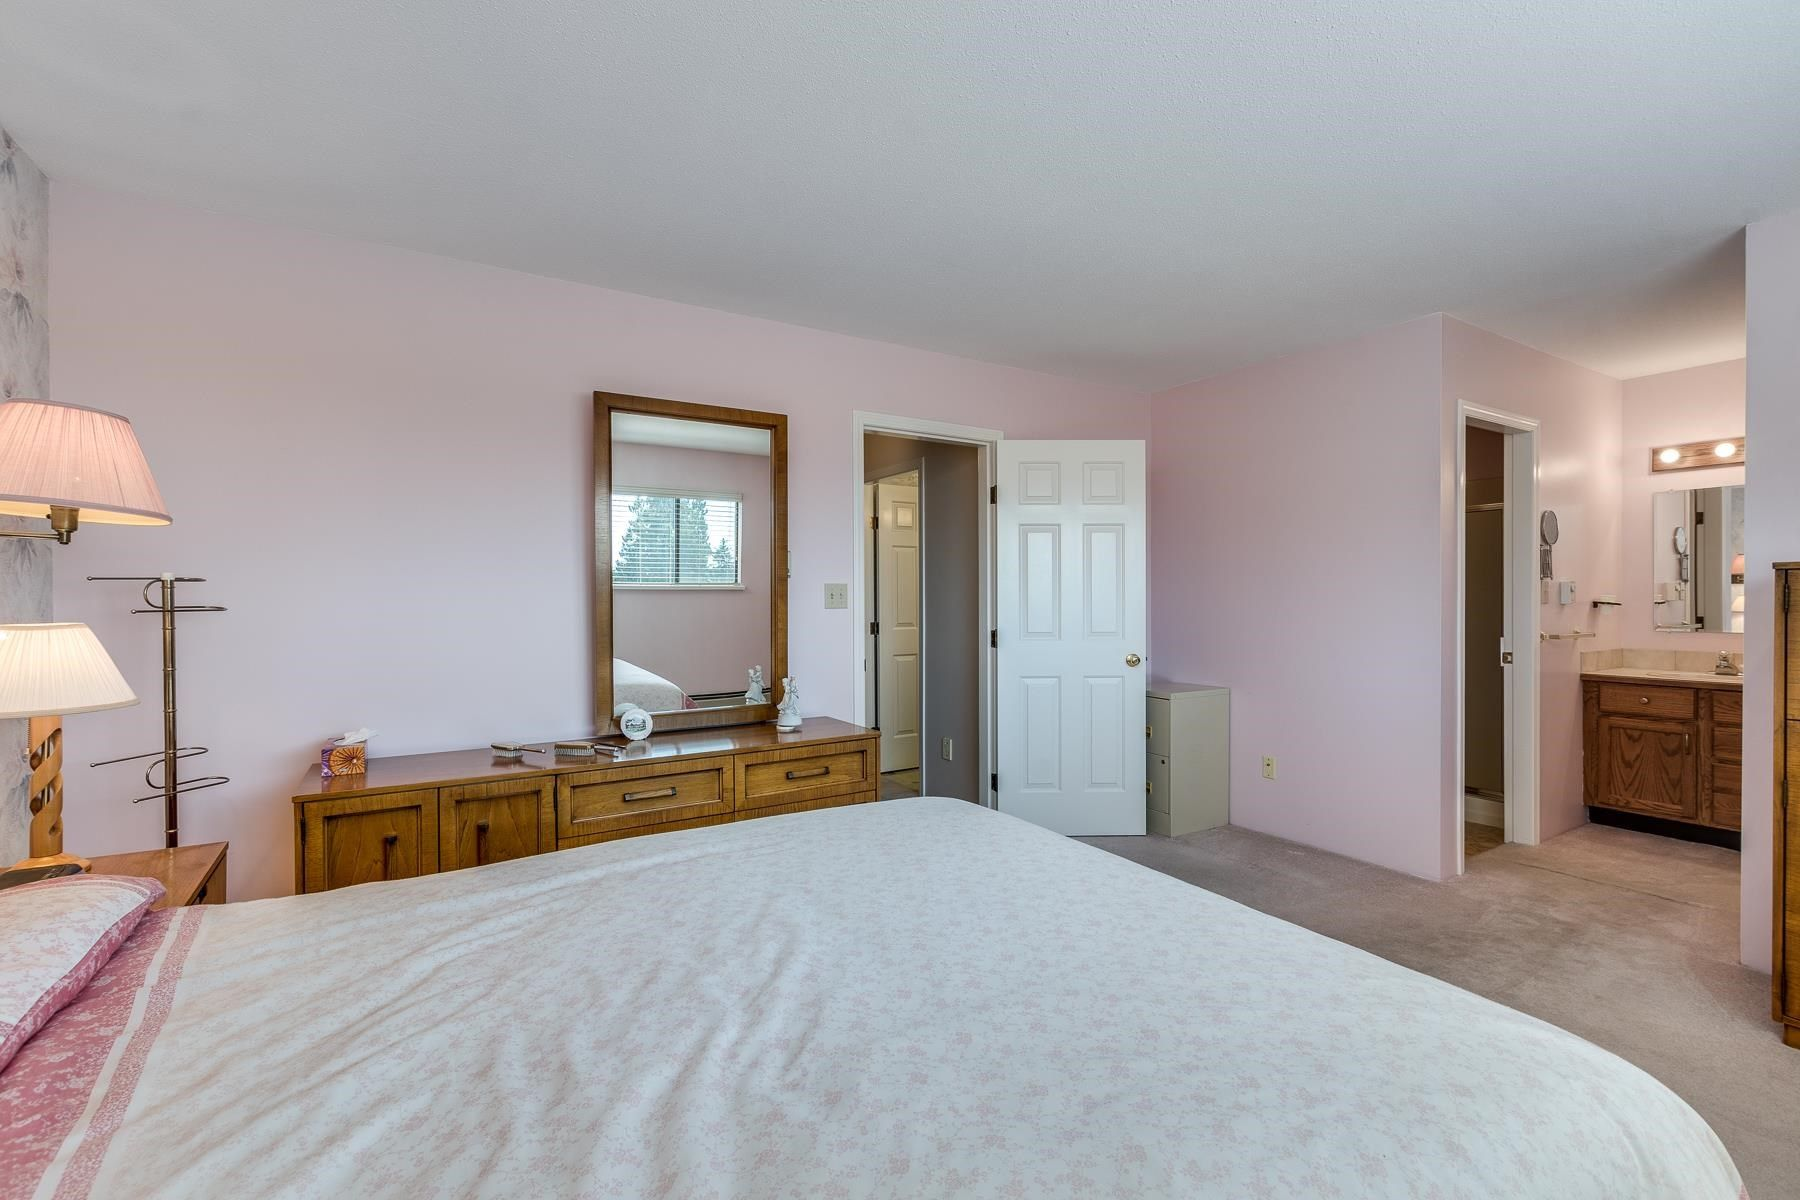 """Photo 22: Photos: 378 BALFOUR Drive in Coquitlam: Coquitlam East House for sale in """"DARTMOOR HEIGHTS"""" : MLS®# R2600428"""